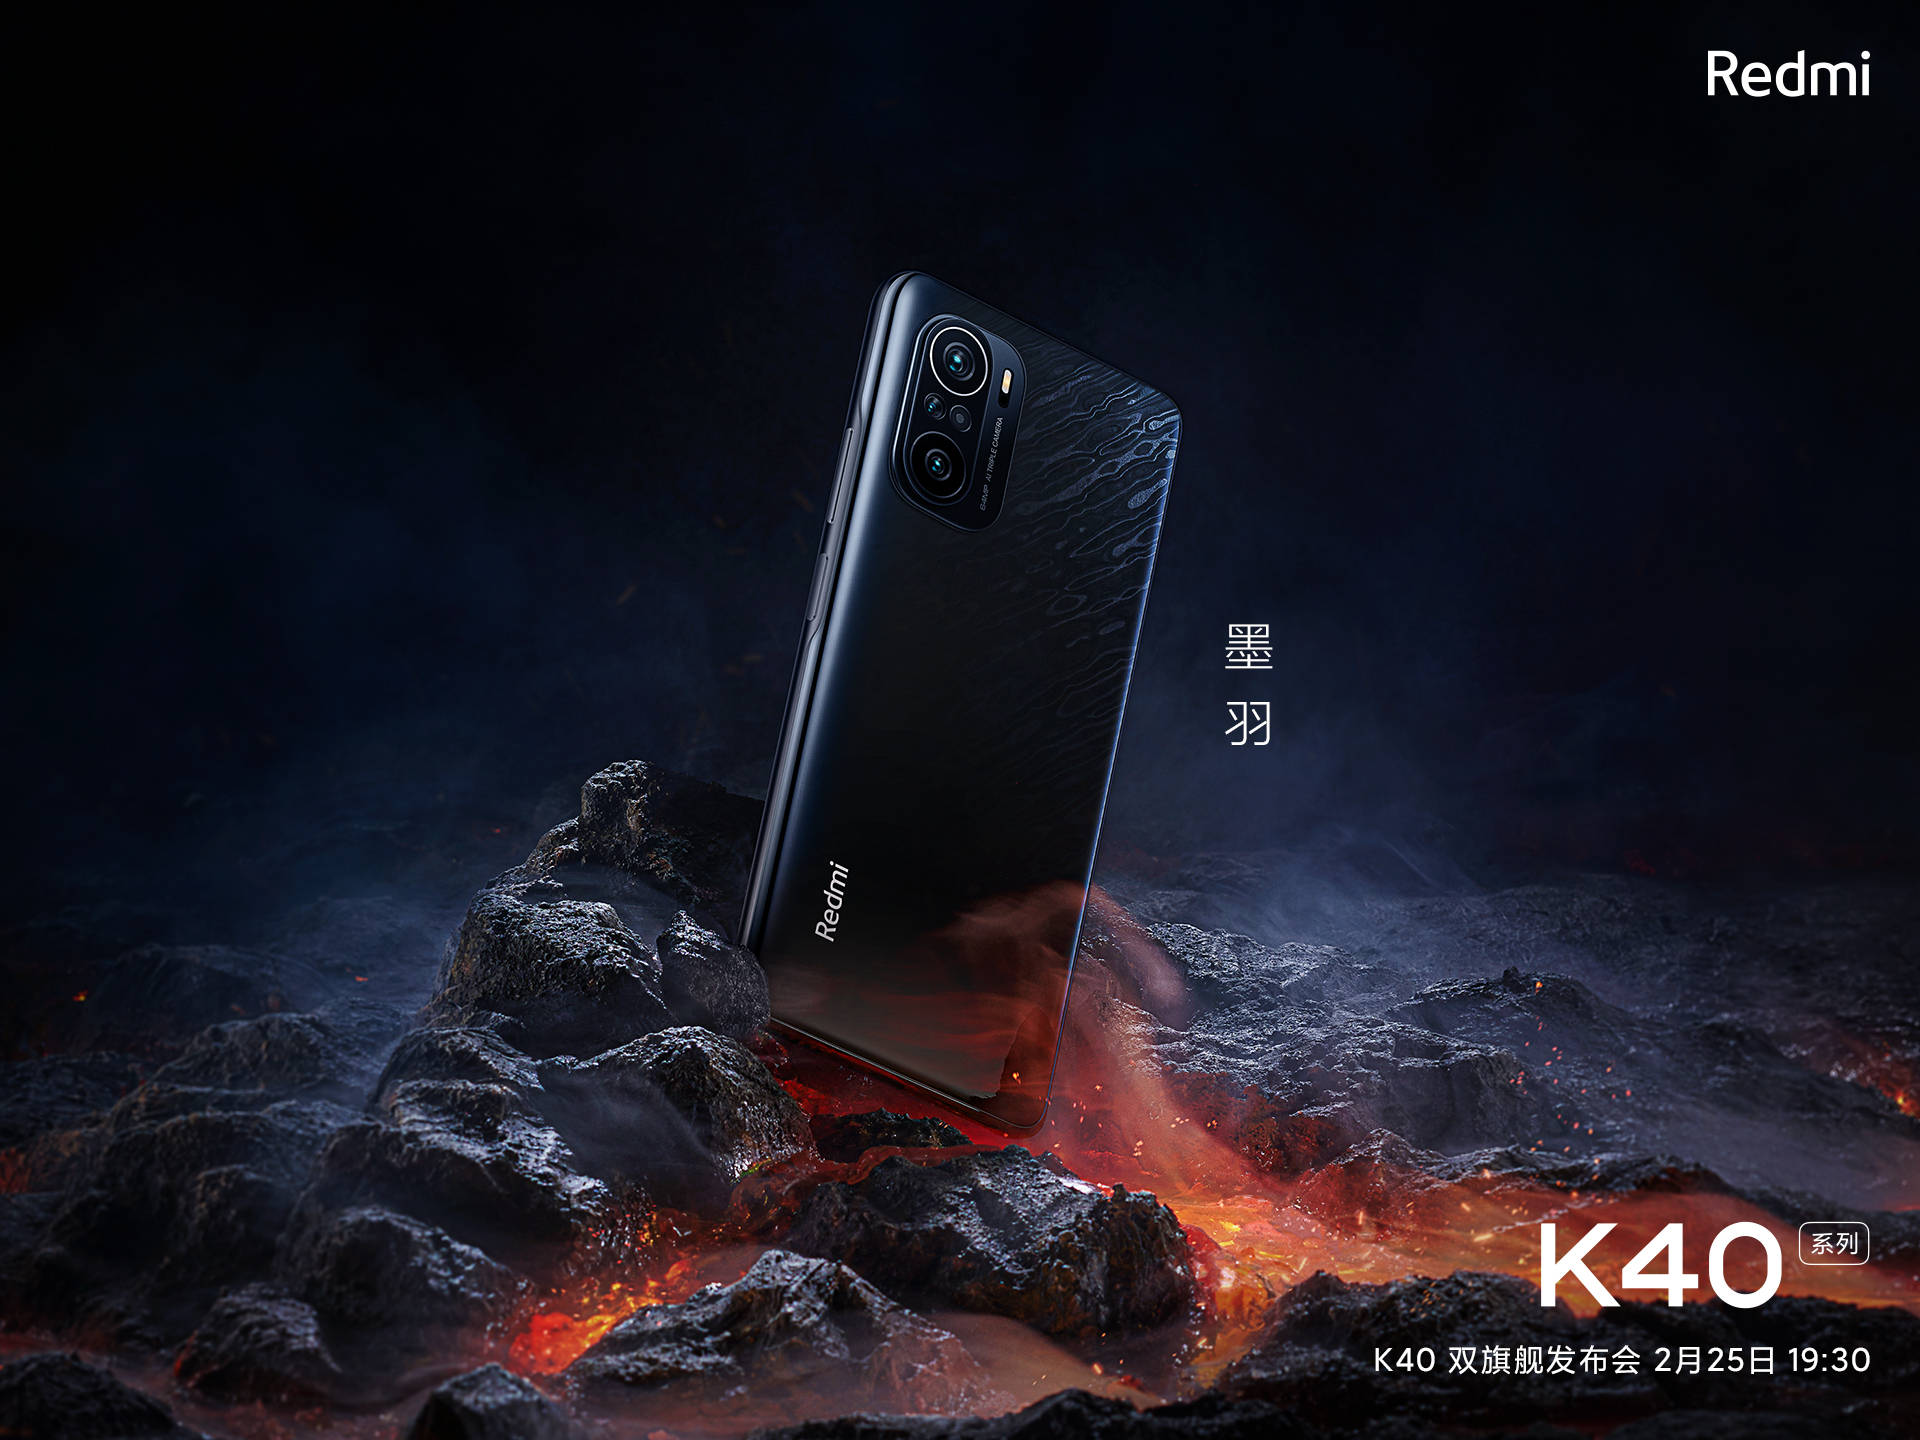 Xiaomi shows us the Redmi K40 again and its spectacular textured design